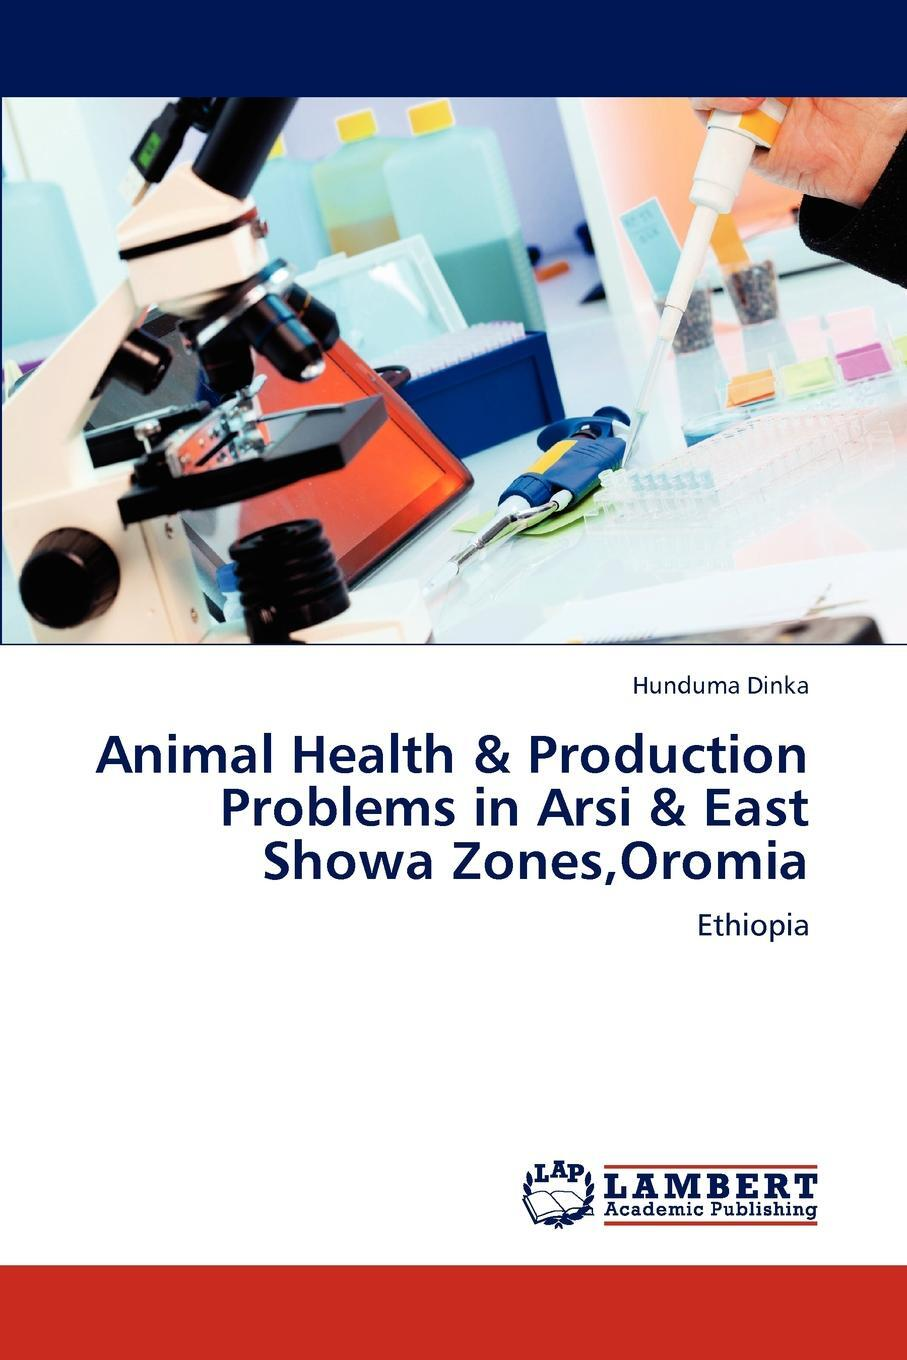 Animal Health & Production Problems in Arsi & East Showa Zones, Oromia